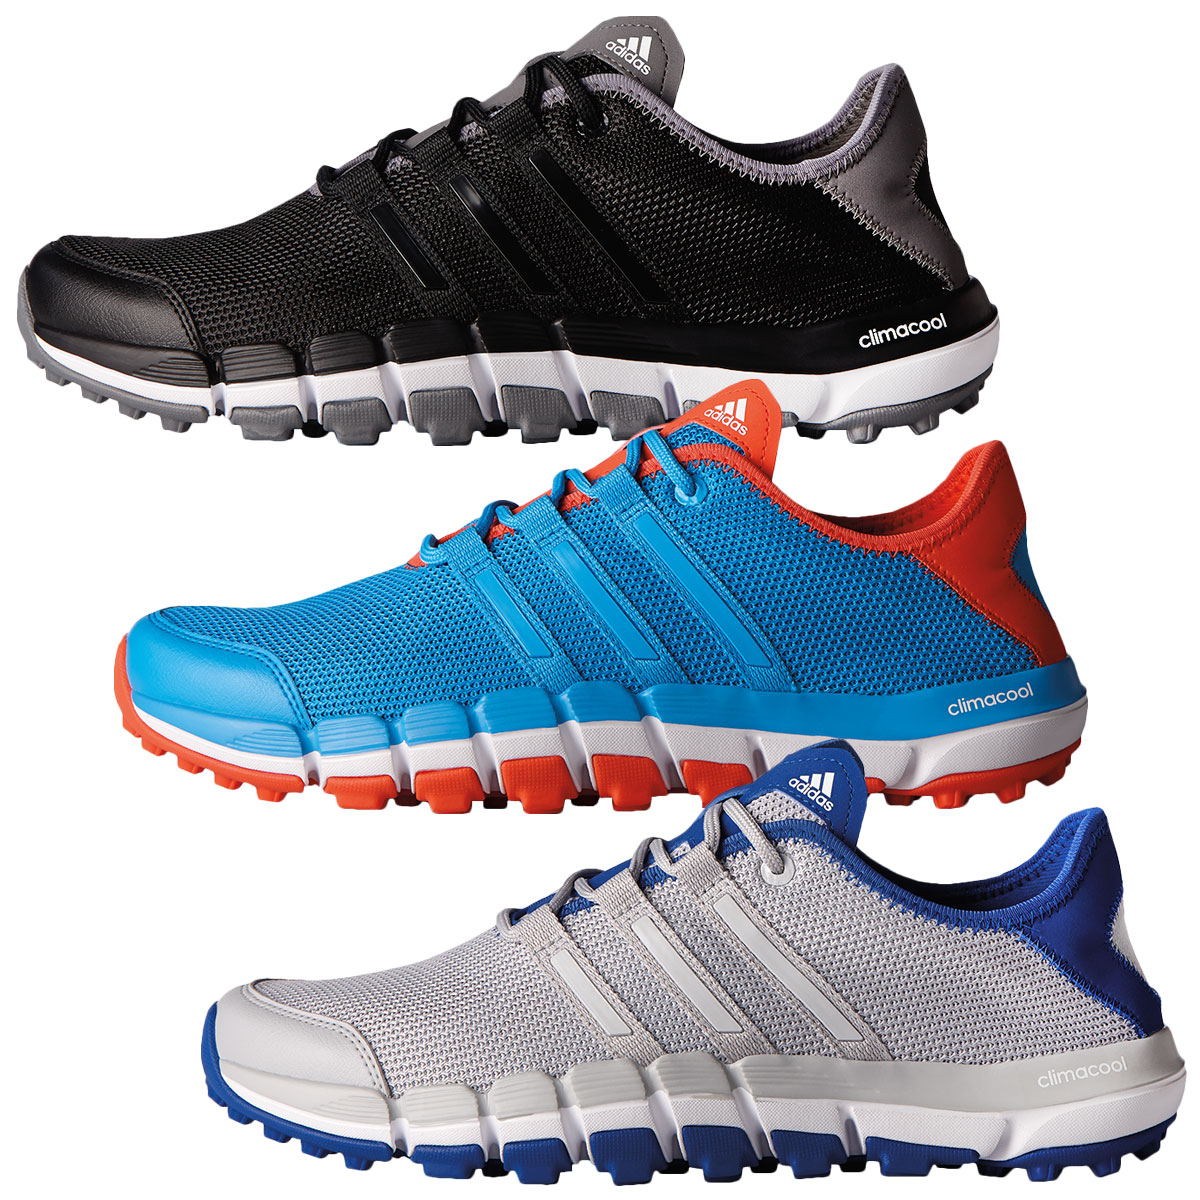 adidas climacool st golf shoes 466c45